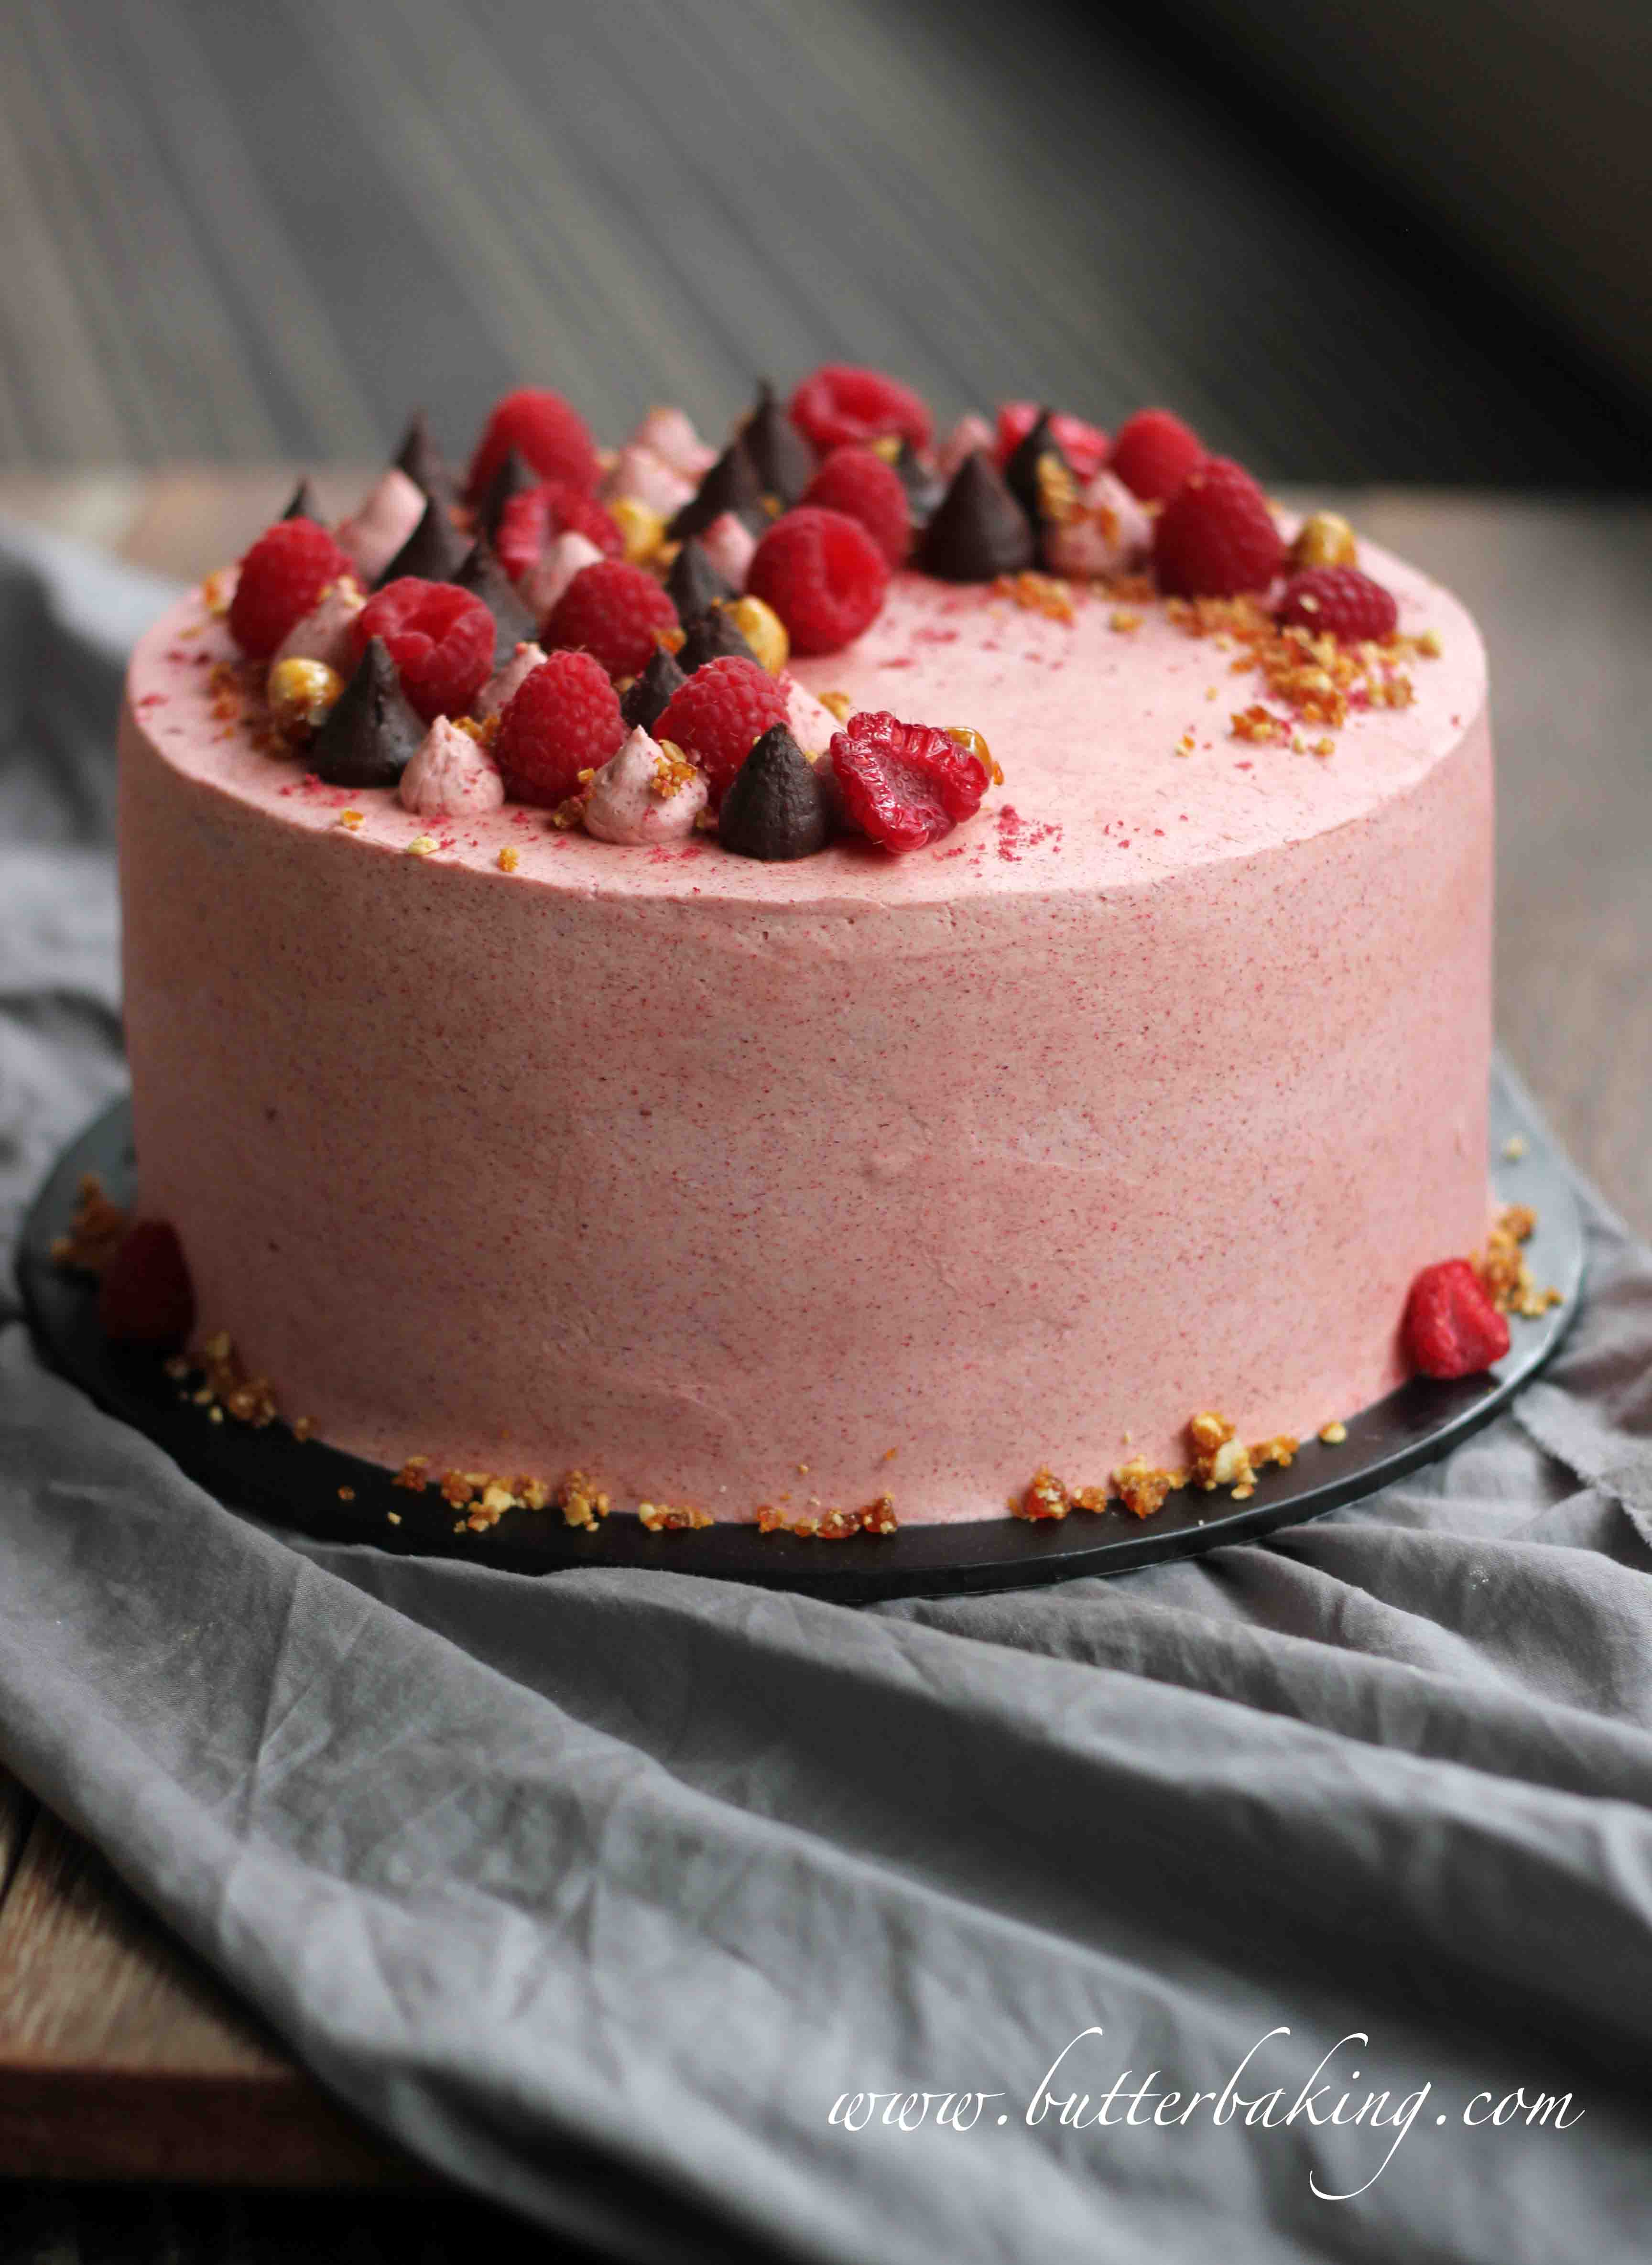 Best Vegan Cake Recipe